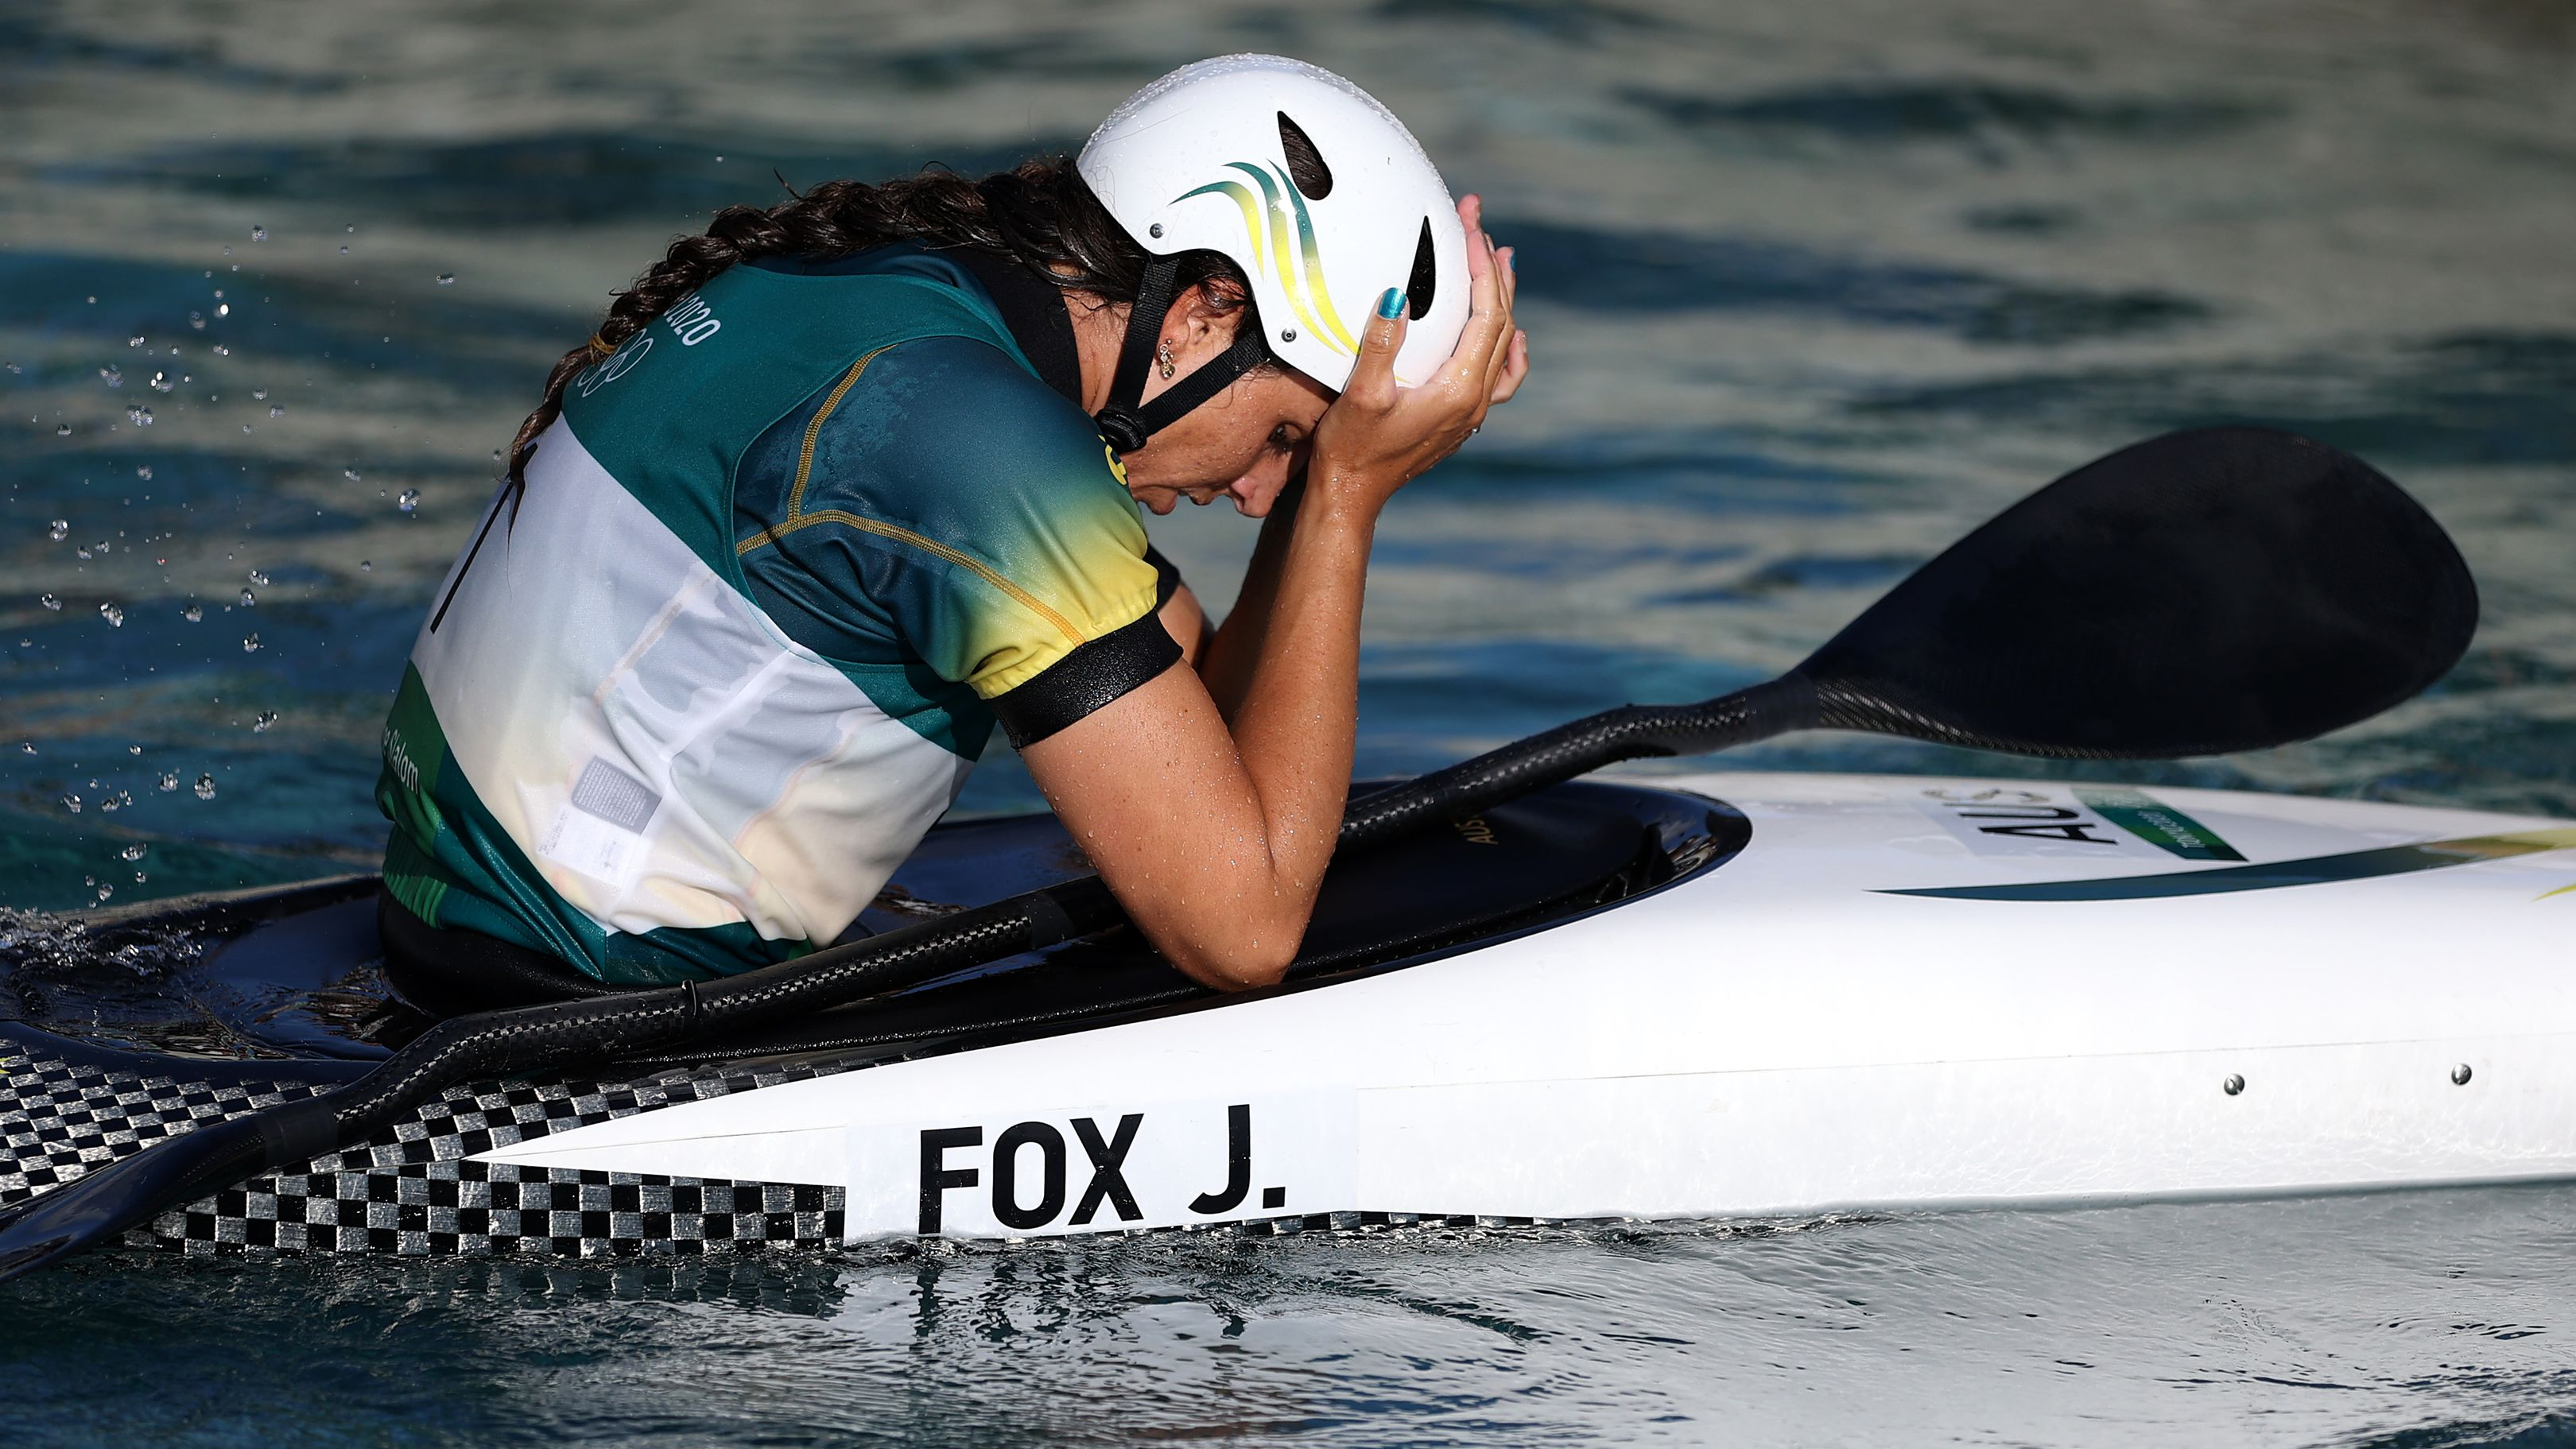 Devastating penalty costs Fox Olympic gold